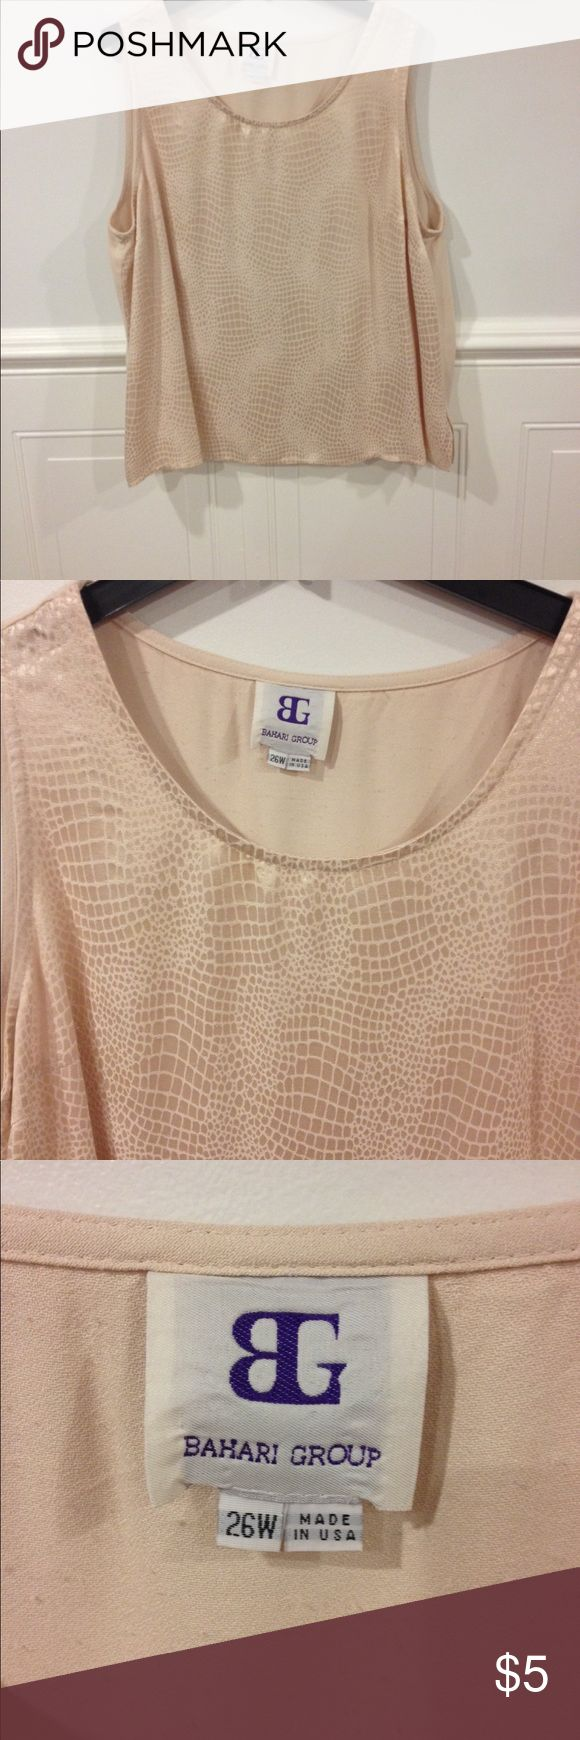 Bahrain Group 26W top good condition Size 26W Bahari Group top good condition Bahari Group Tops